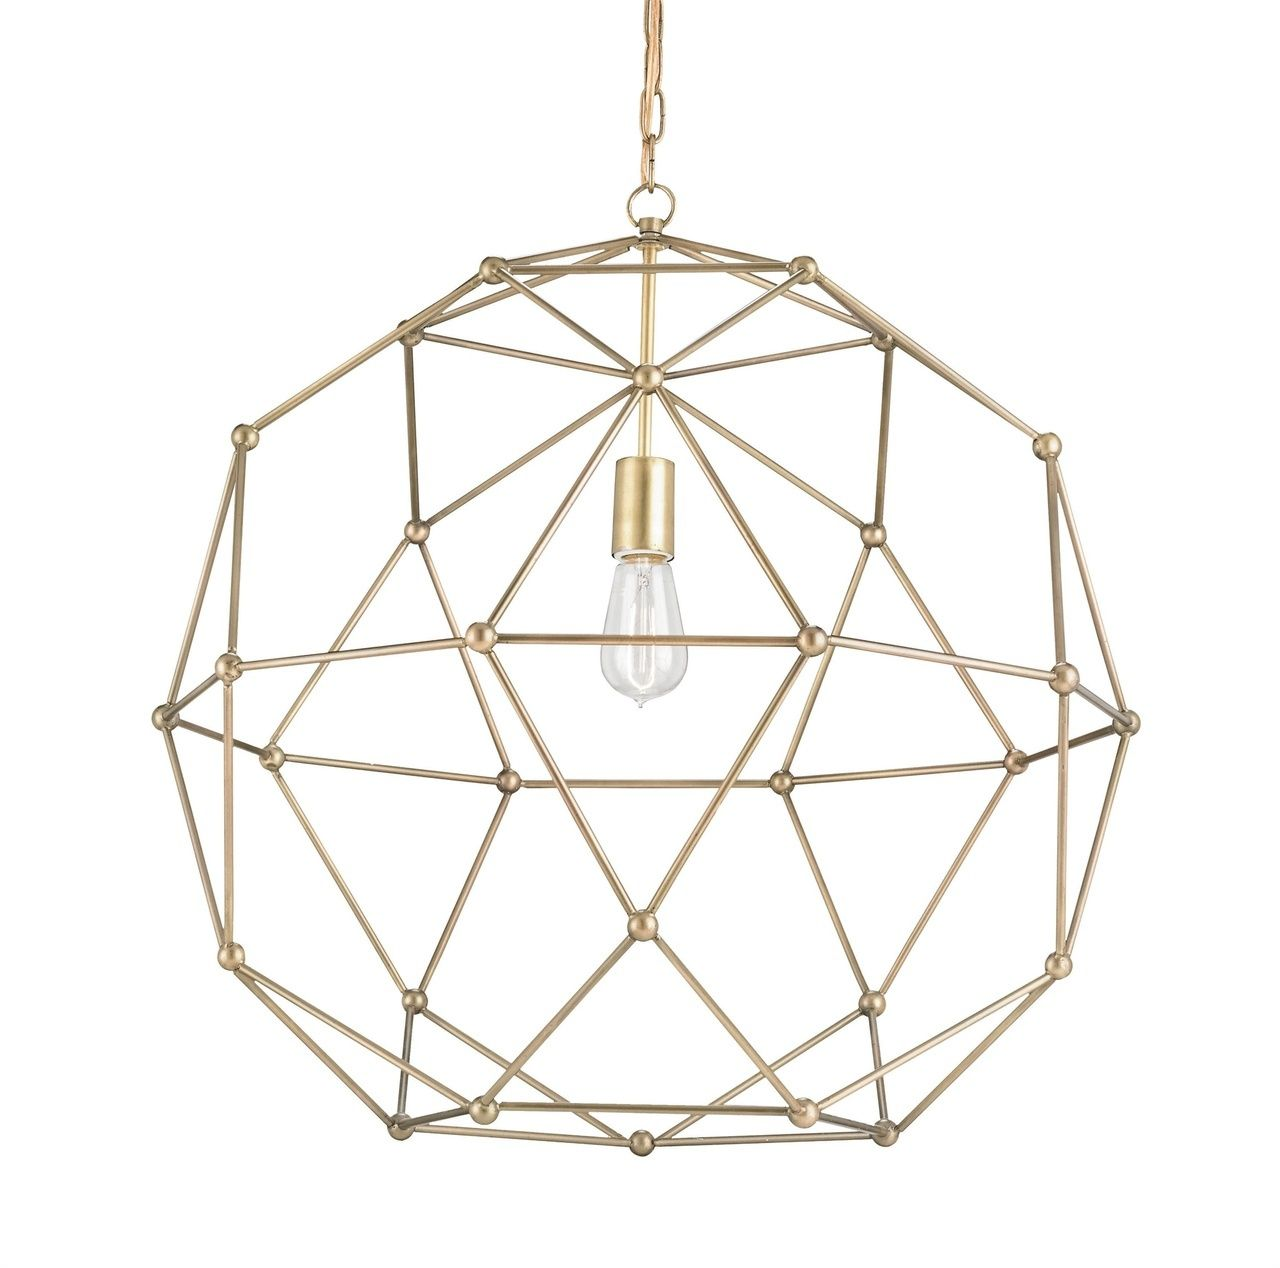 Shop Now for luxury furniture, lighting, original art and other home decor curated by design bloggers Beth Woodson and Kristy Harvey.  Free shipping on items over $100!